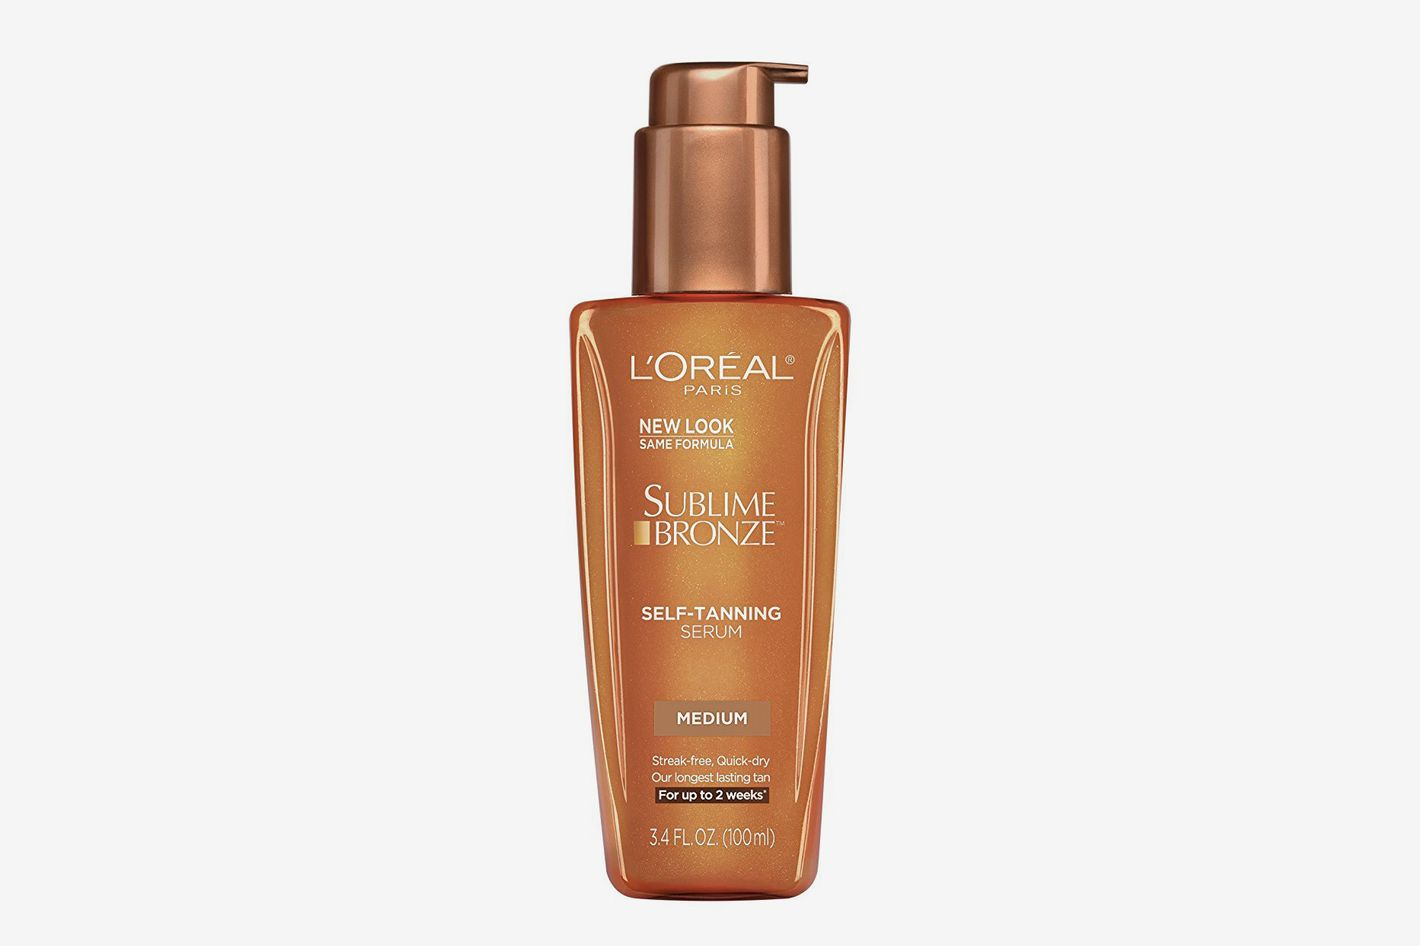 L'Oréal Paris Sublime Bronze Self-Tanning Serum